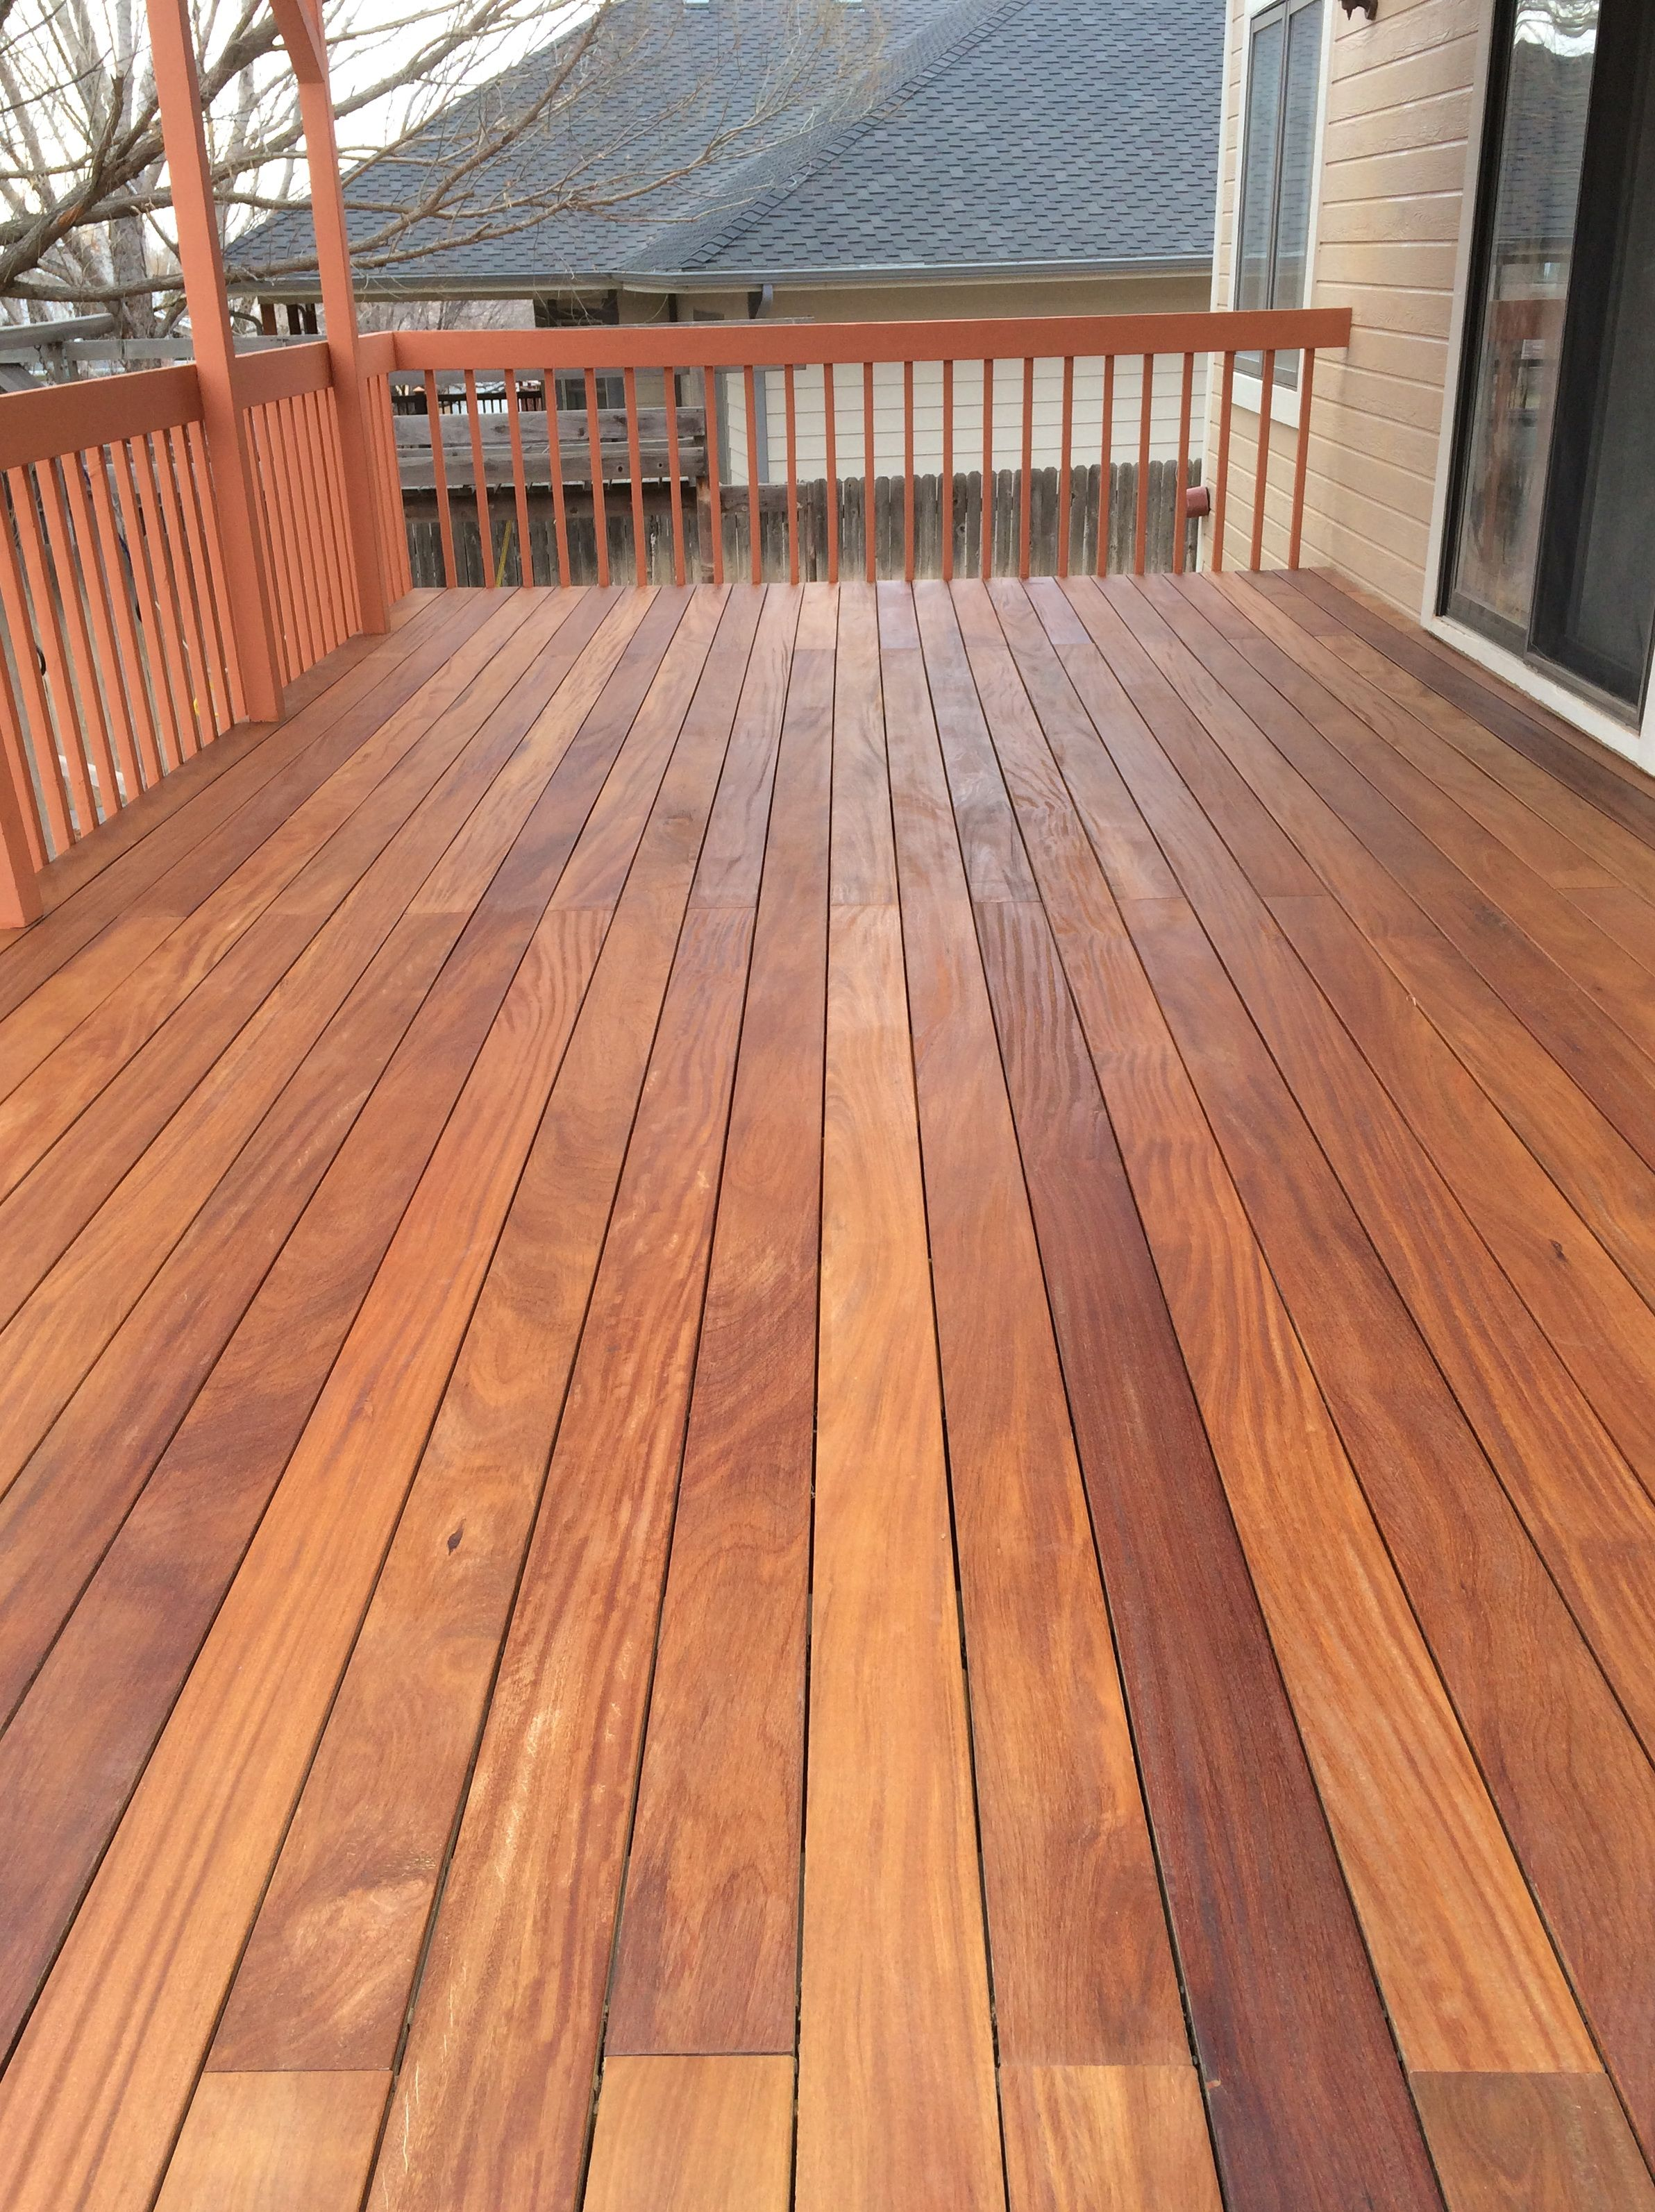 Sikkens Deck Stain Colors Deck Stain Colors Best Deck Stain